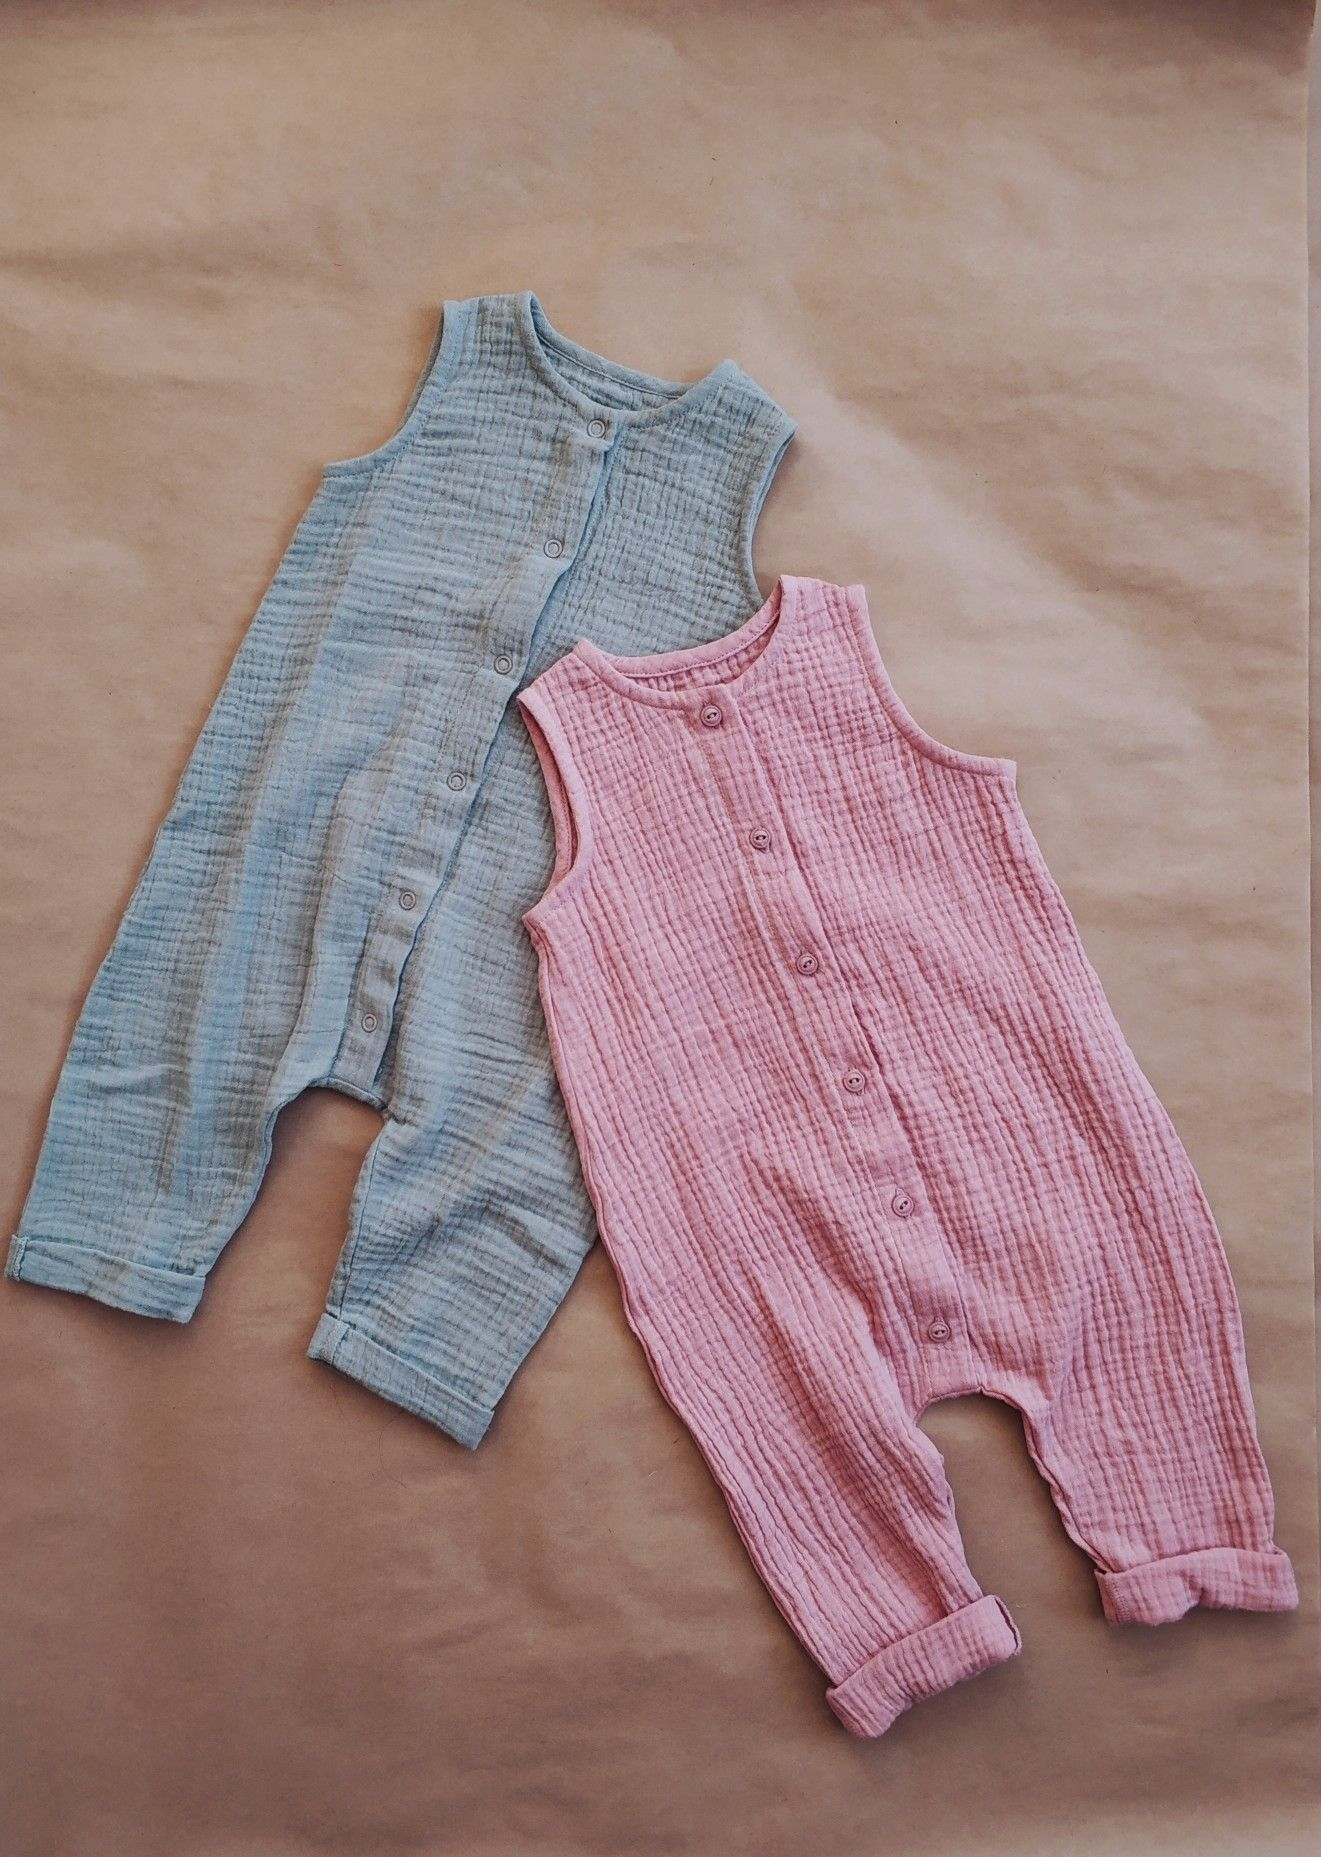 Bio Fleece Stoff Natur Shop Pinterest Muslin Organic Cotton Double Gauze Jumsuits Tsiomikkids Kids